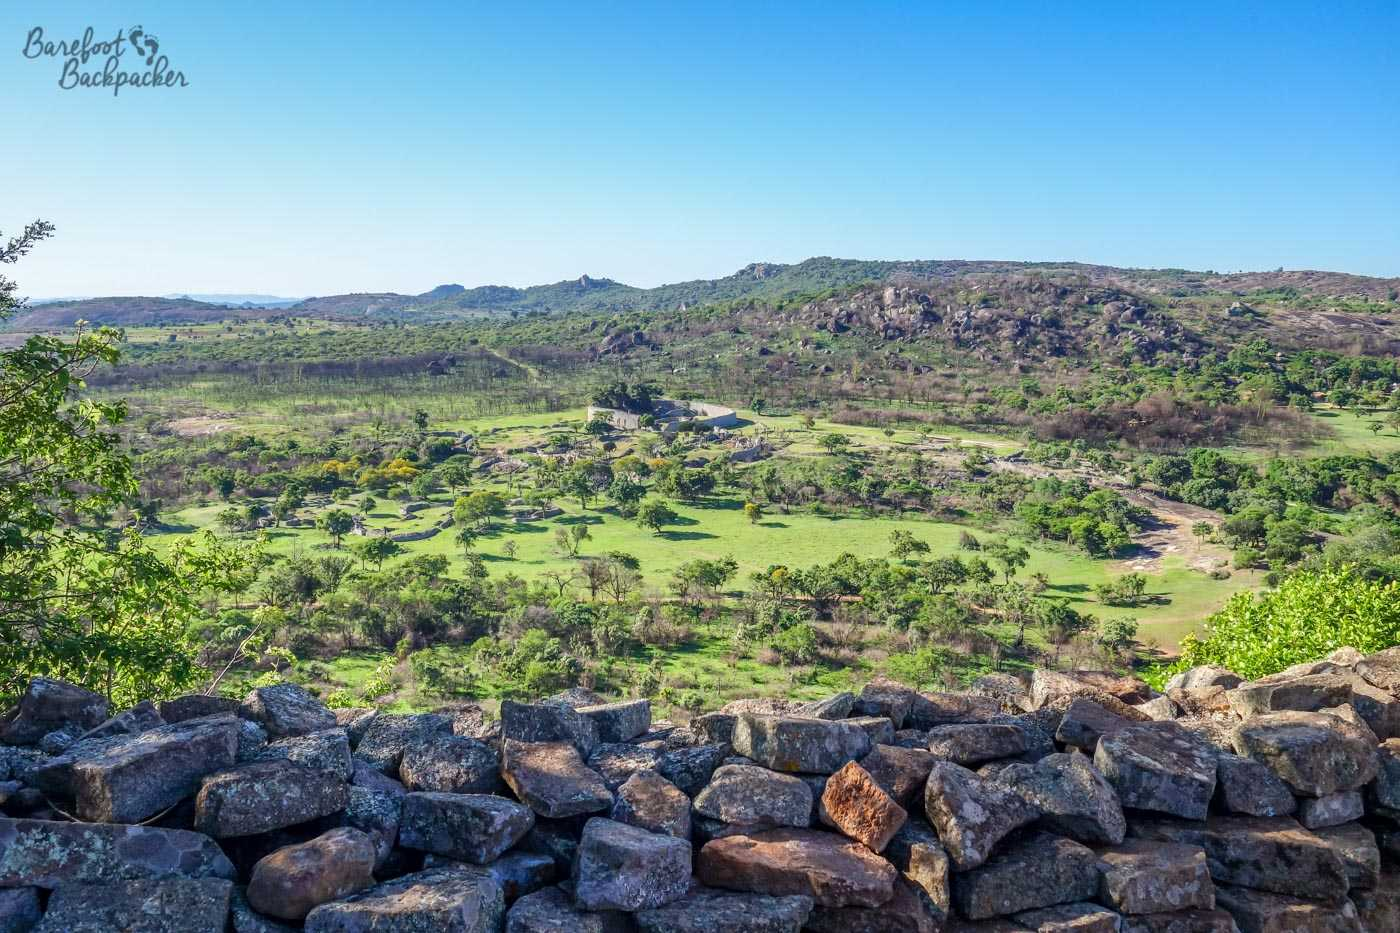 From the top of the Hill Complex, this is looking out over the Valley area and the plains on which the rest of Great Zimbabwe was built.